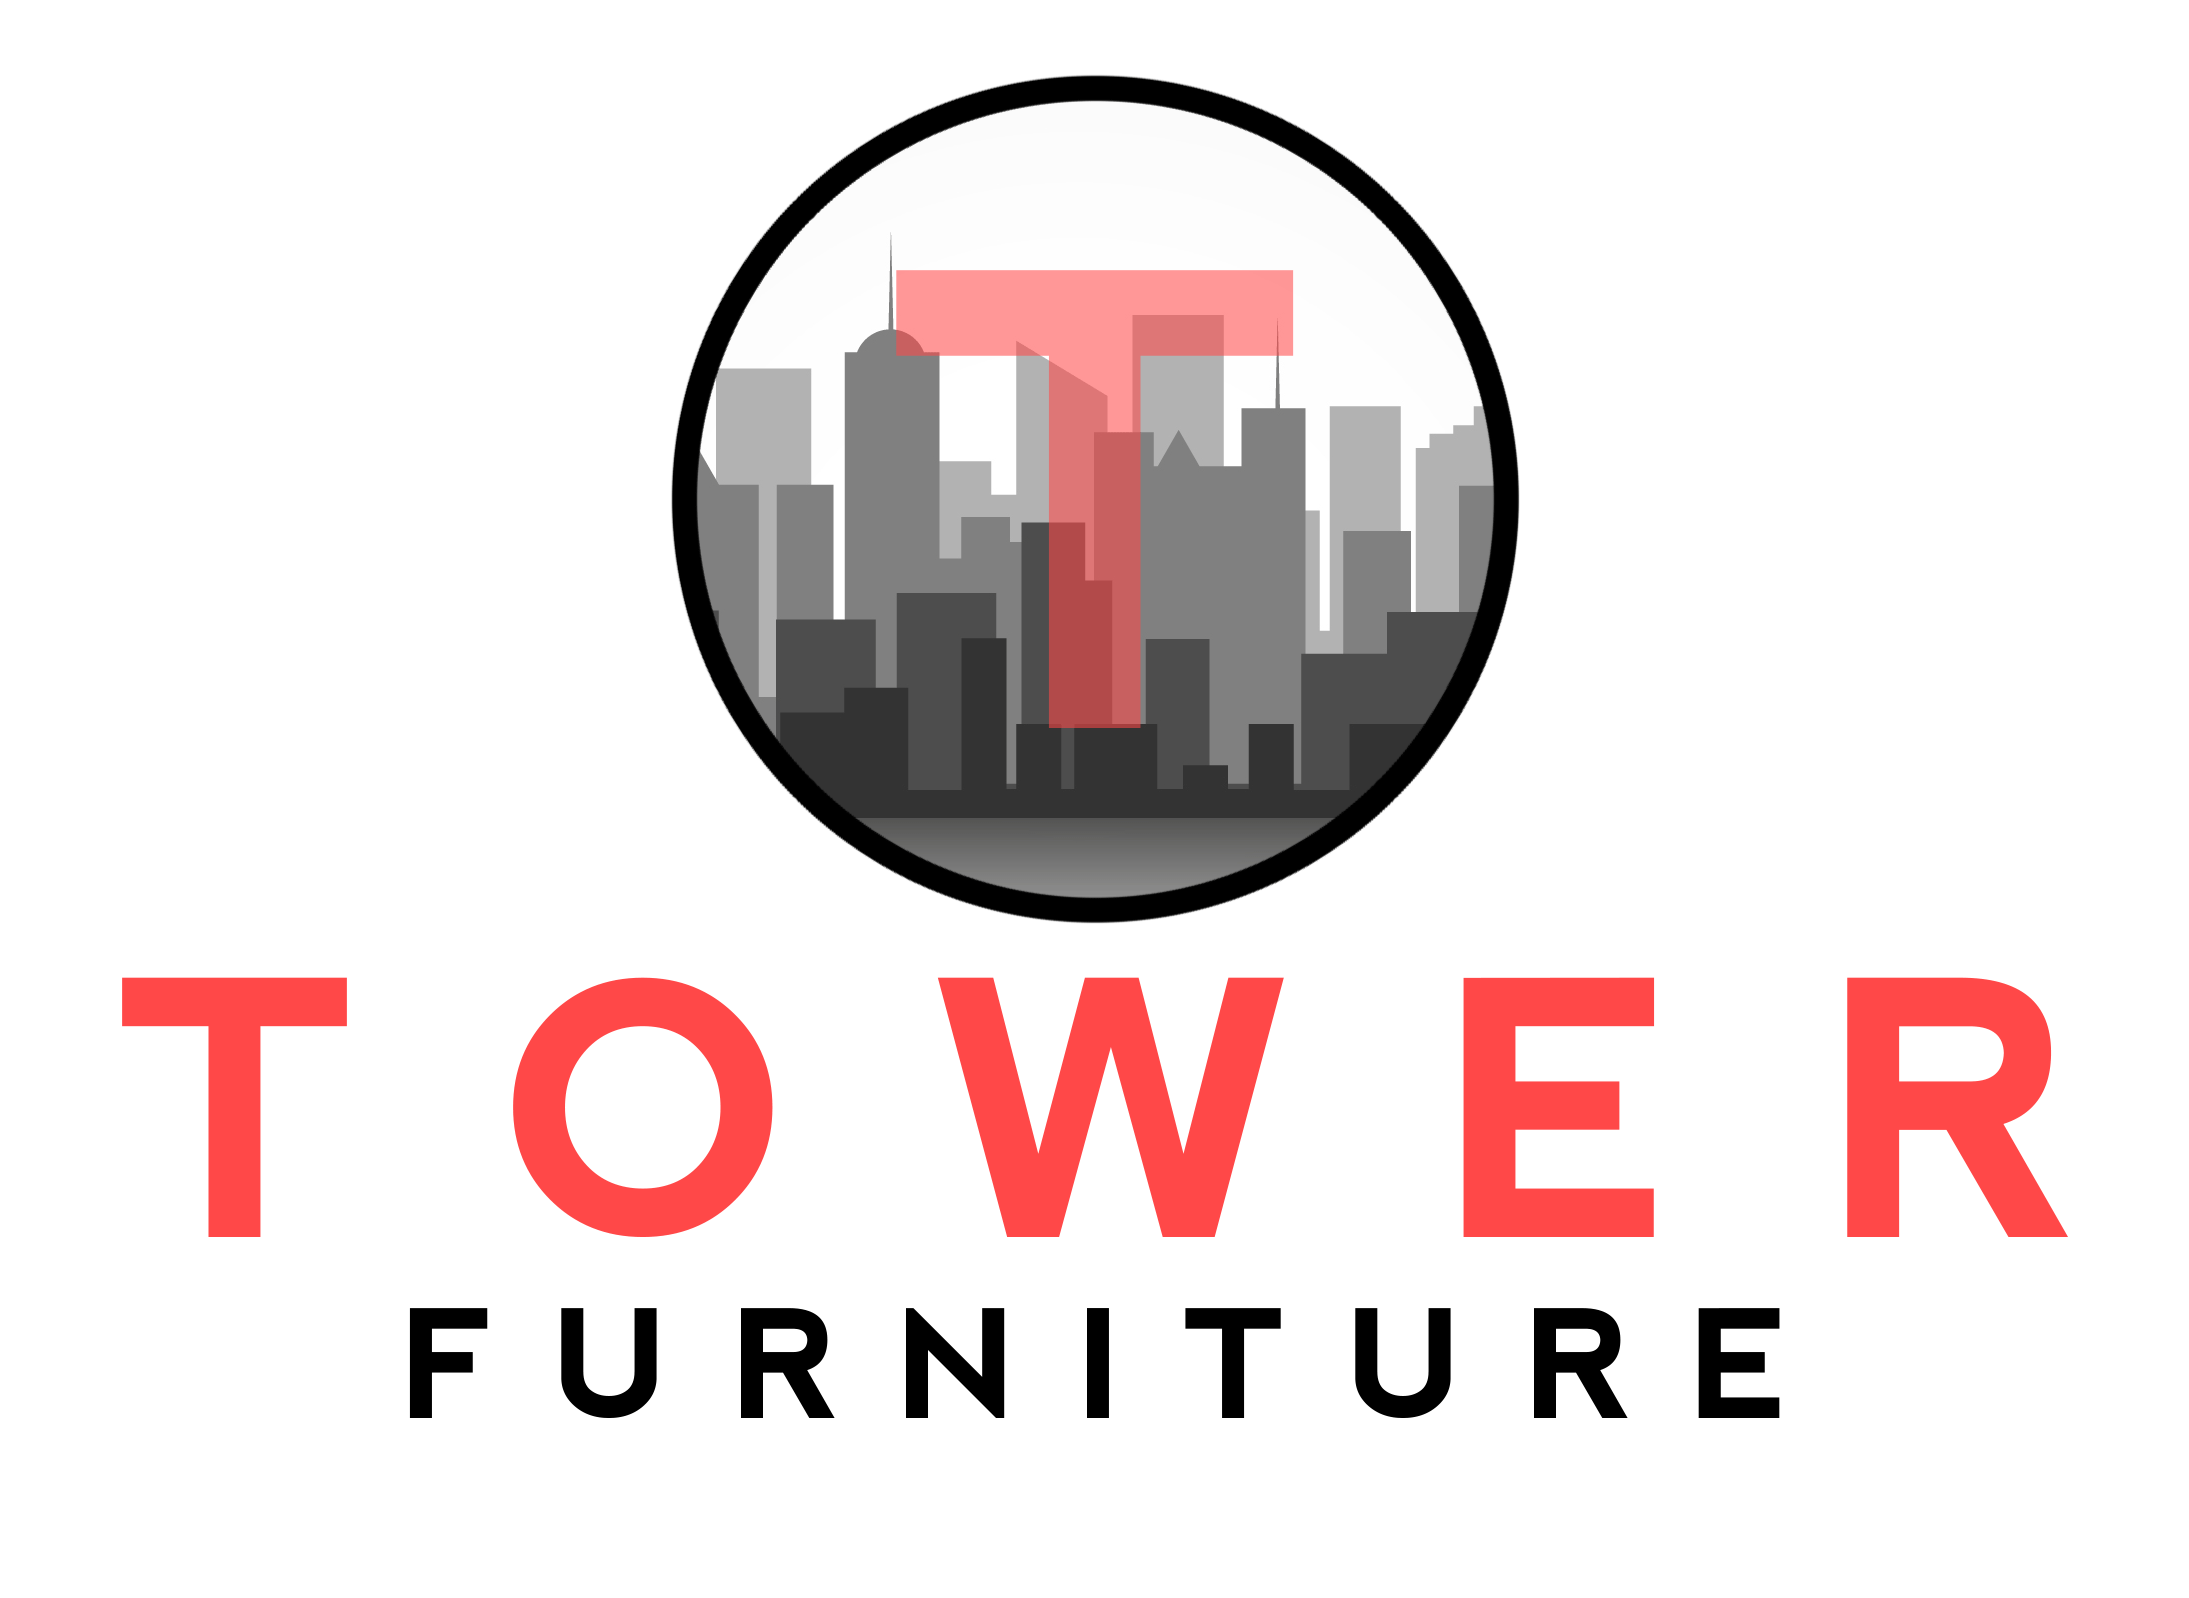 Tower Furniture